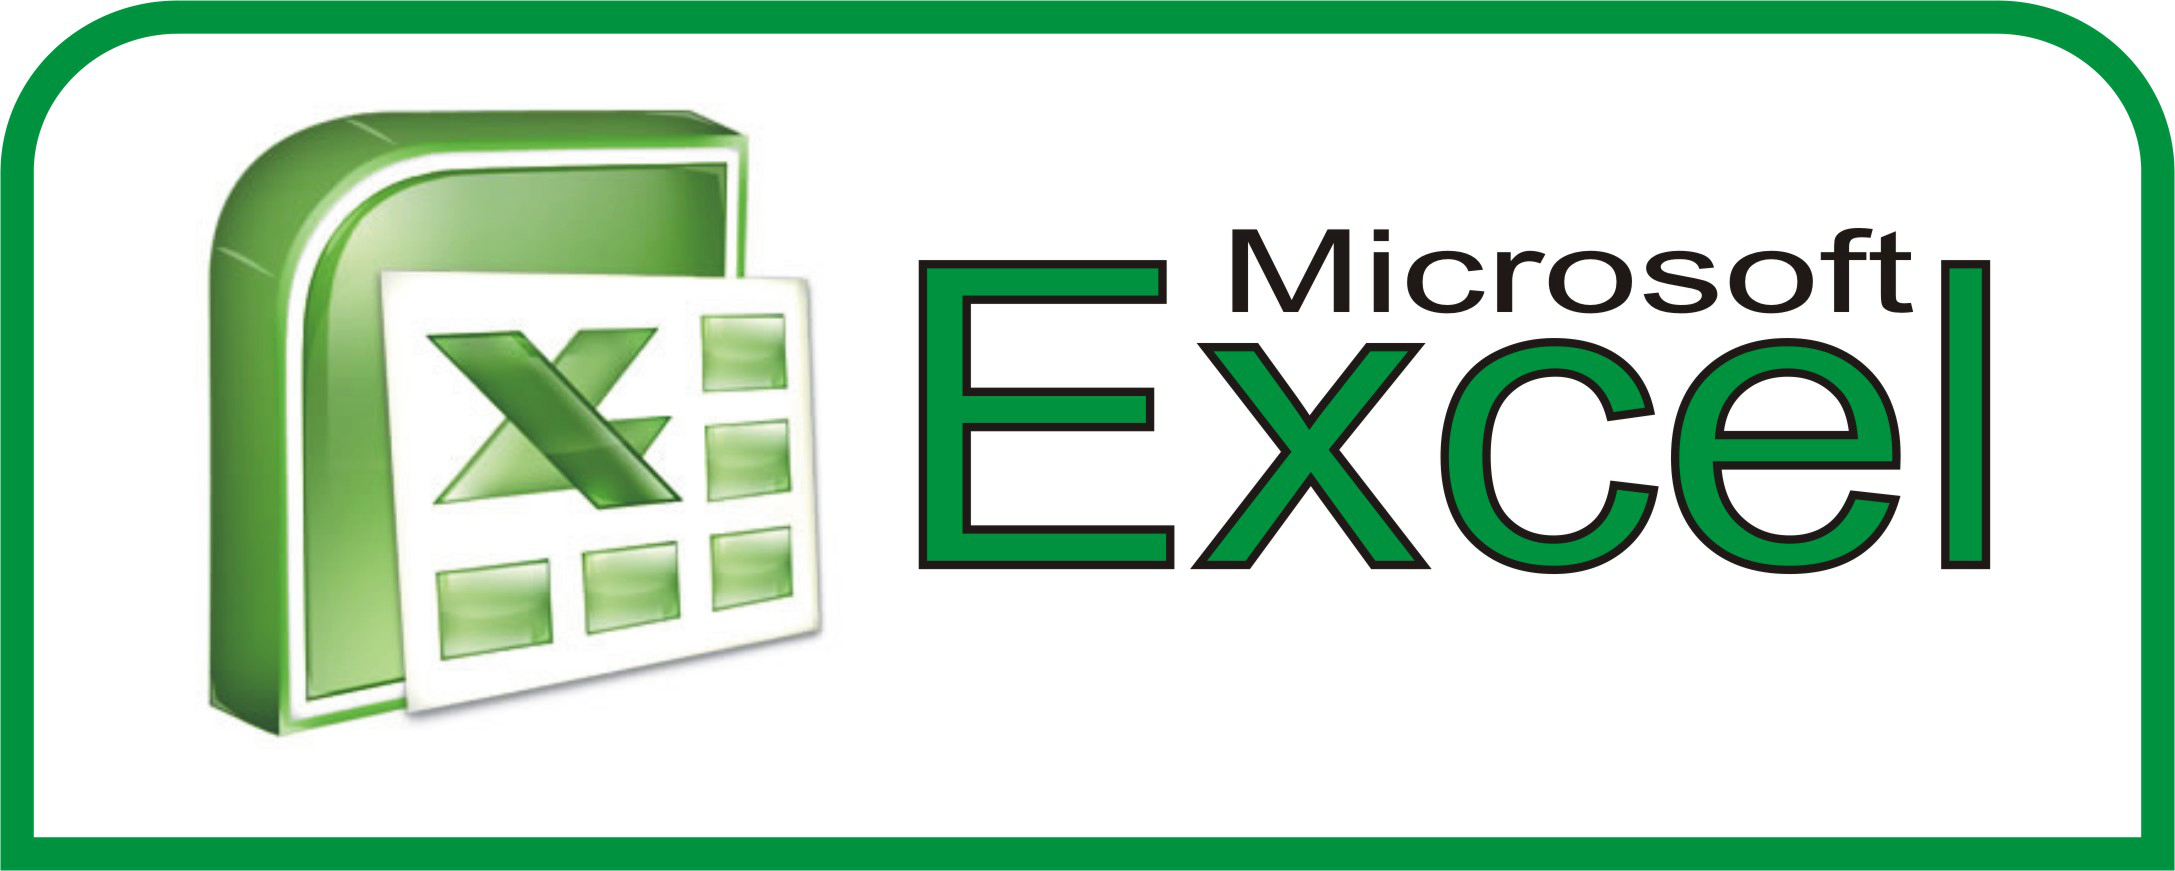 Ediblewildsus  Personable  Excel Shortcuts You Probably Didnt Know About  Techdissected With Licious The Basics Of Excel Besides Excel Classes Miami Furthermore Excel Divide Cells With Agreeable Excel If Begins With Also Excel Macro Paste In Addition Mail Merge Excel To Word  And Ms Excel Remove Duplicates As Well As Construction Budget Excel Template Additionally Excel Filter Sum From Techdissectedcom With Ediblewildsus  Licious  Excel Shortcuts You Probably Didnt Know About  Techdissected With Agreeable The Basics Of Excel Besides Excel Classes Miami Furthermore Excel Divide Cells And Personable Excel If Begins With Also Excel Macro Paste In Addition Mail Merge Excel To Word  From Techdissectedcom